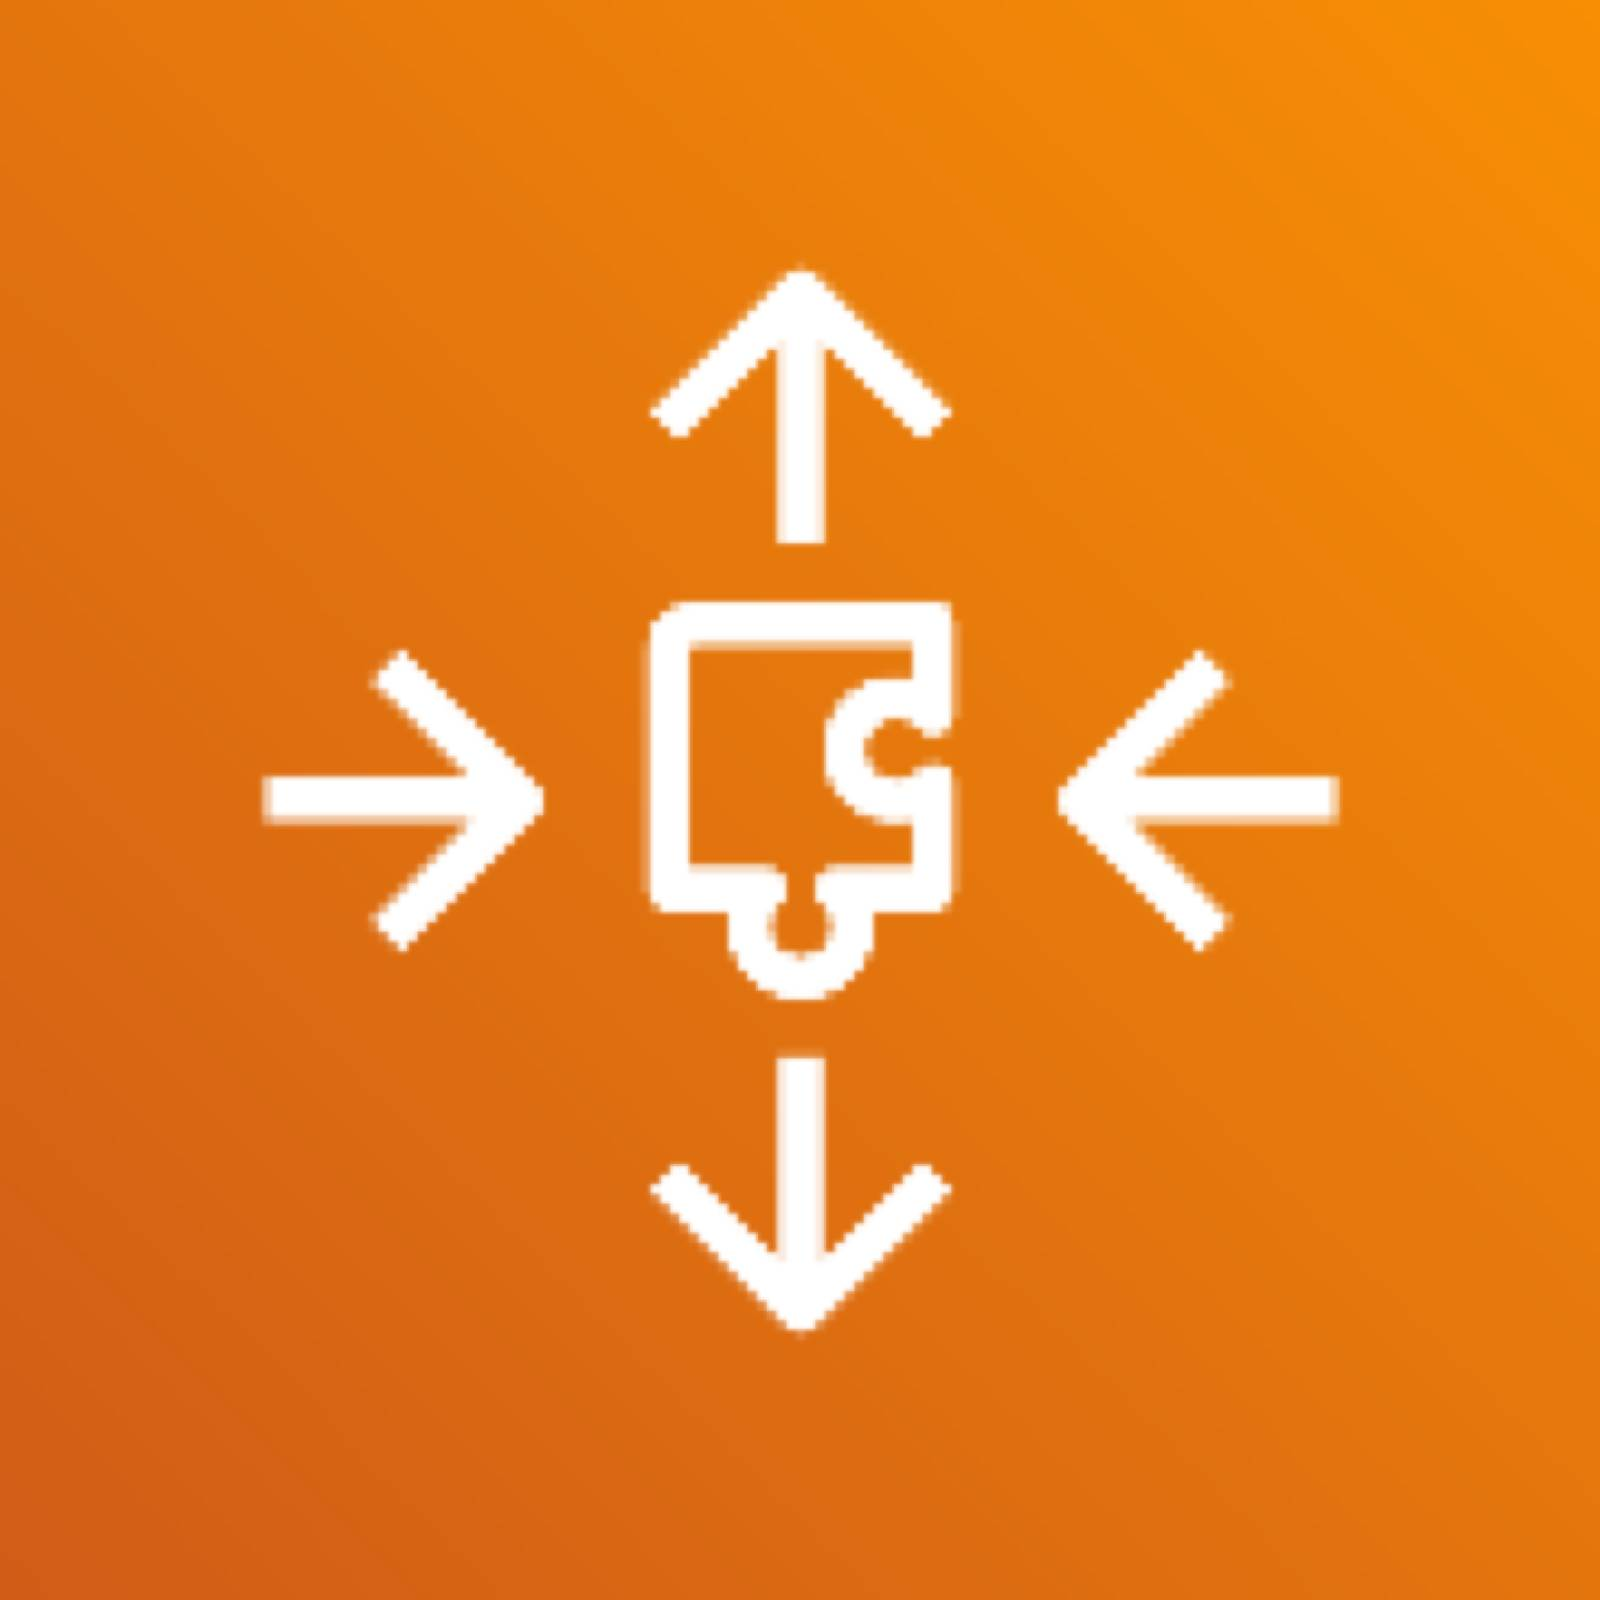 AWS Application Auto Scaling icon depicting a puzzle piece with horizontal arrows pointing toward it and vertical arrows pointing away, against an orange background